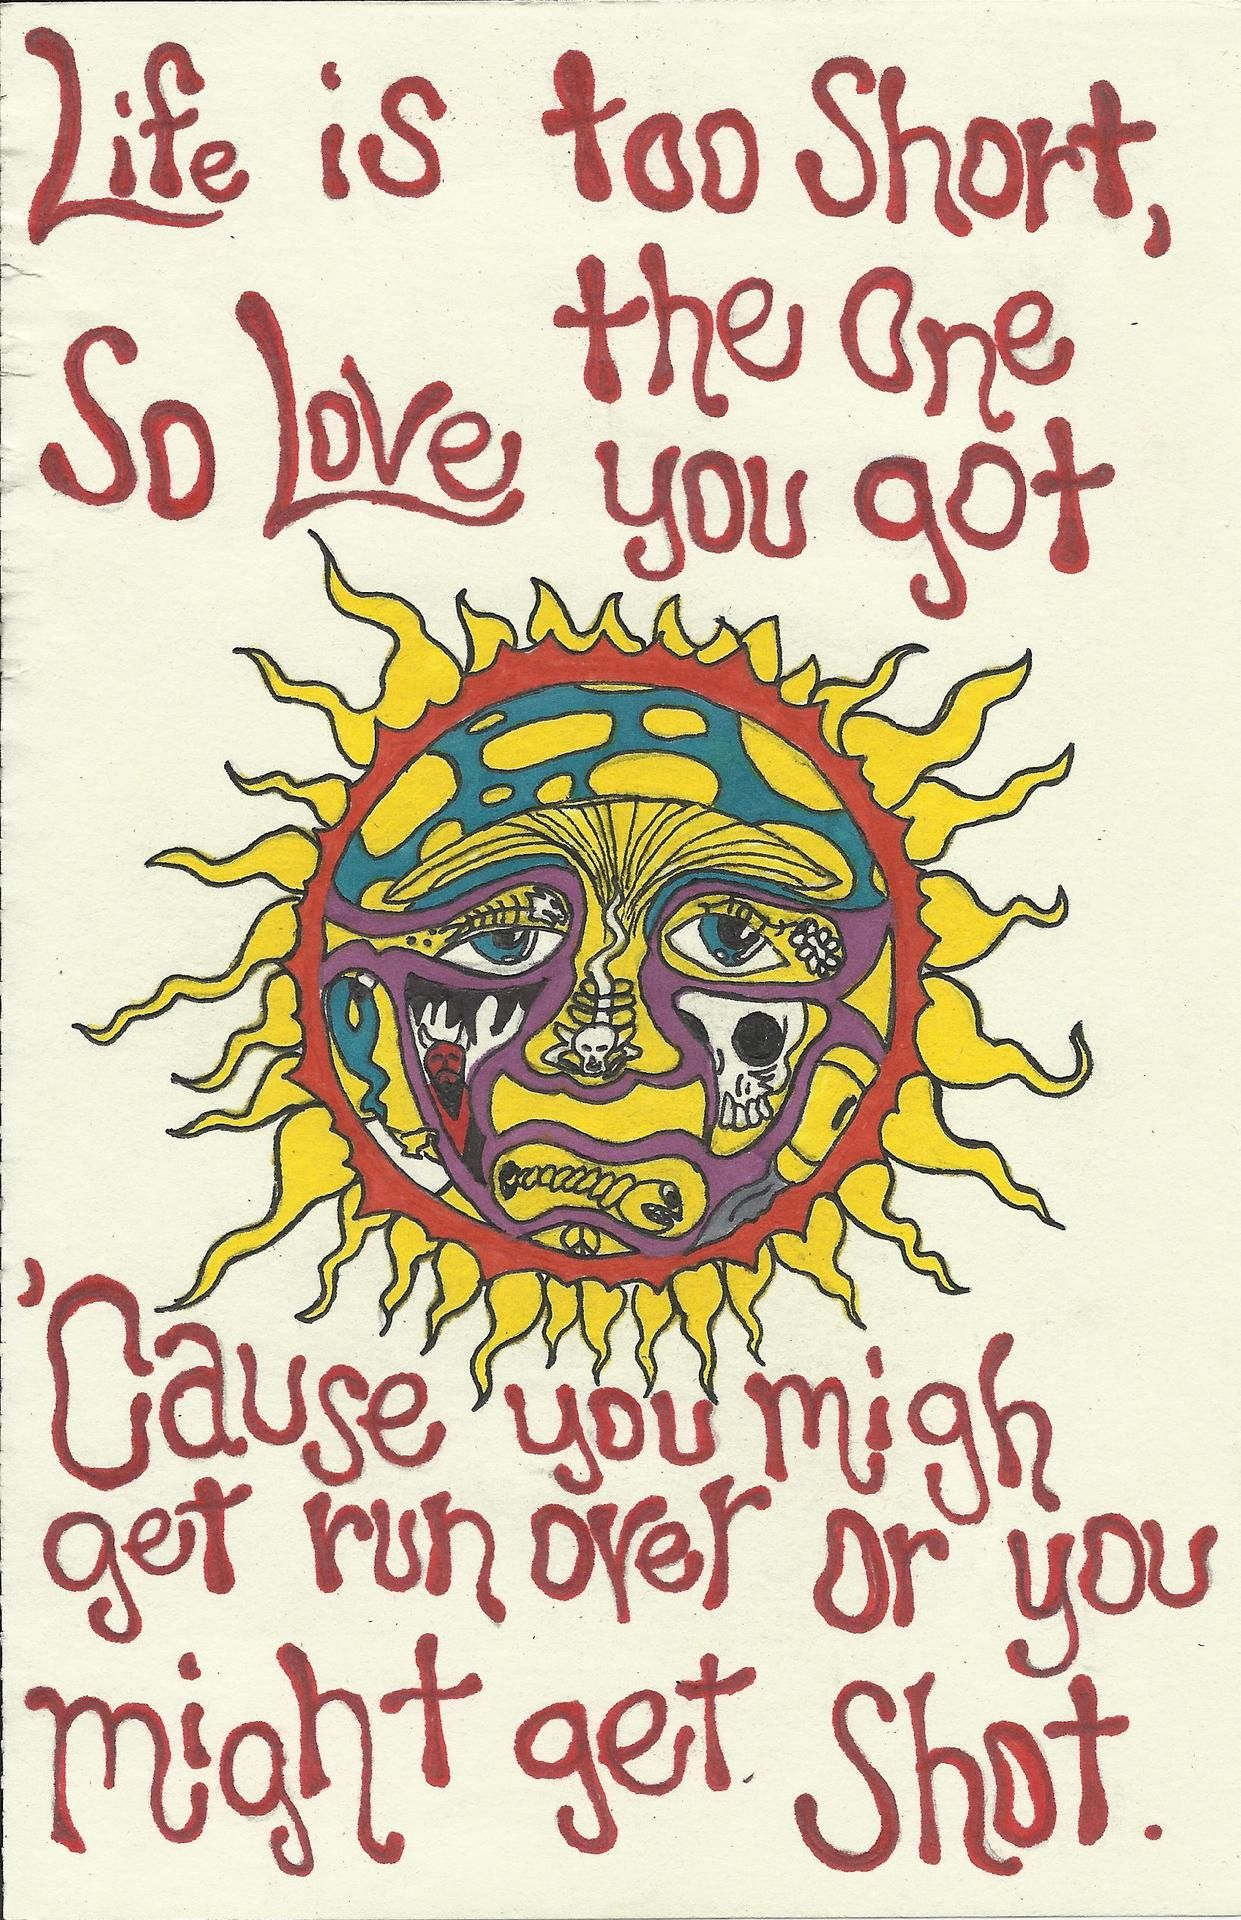 Sublime Jpg Sayings: Love Is What I Got - Sublime